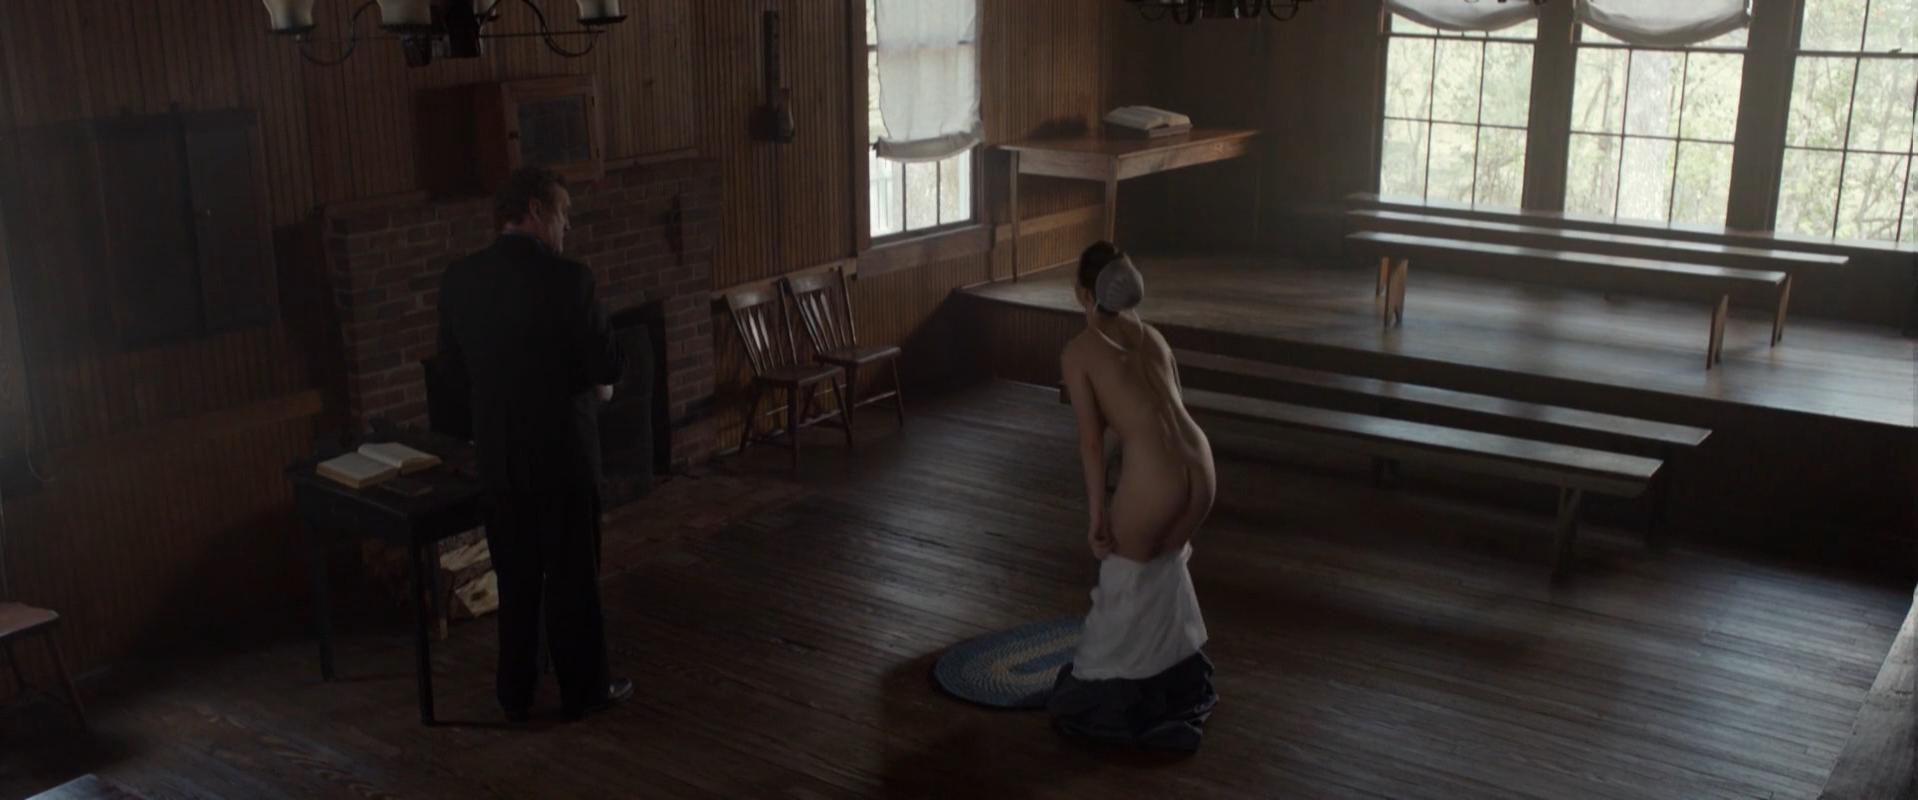 Alycia Debnam-Carey nude - The Devil's Hand (2014)